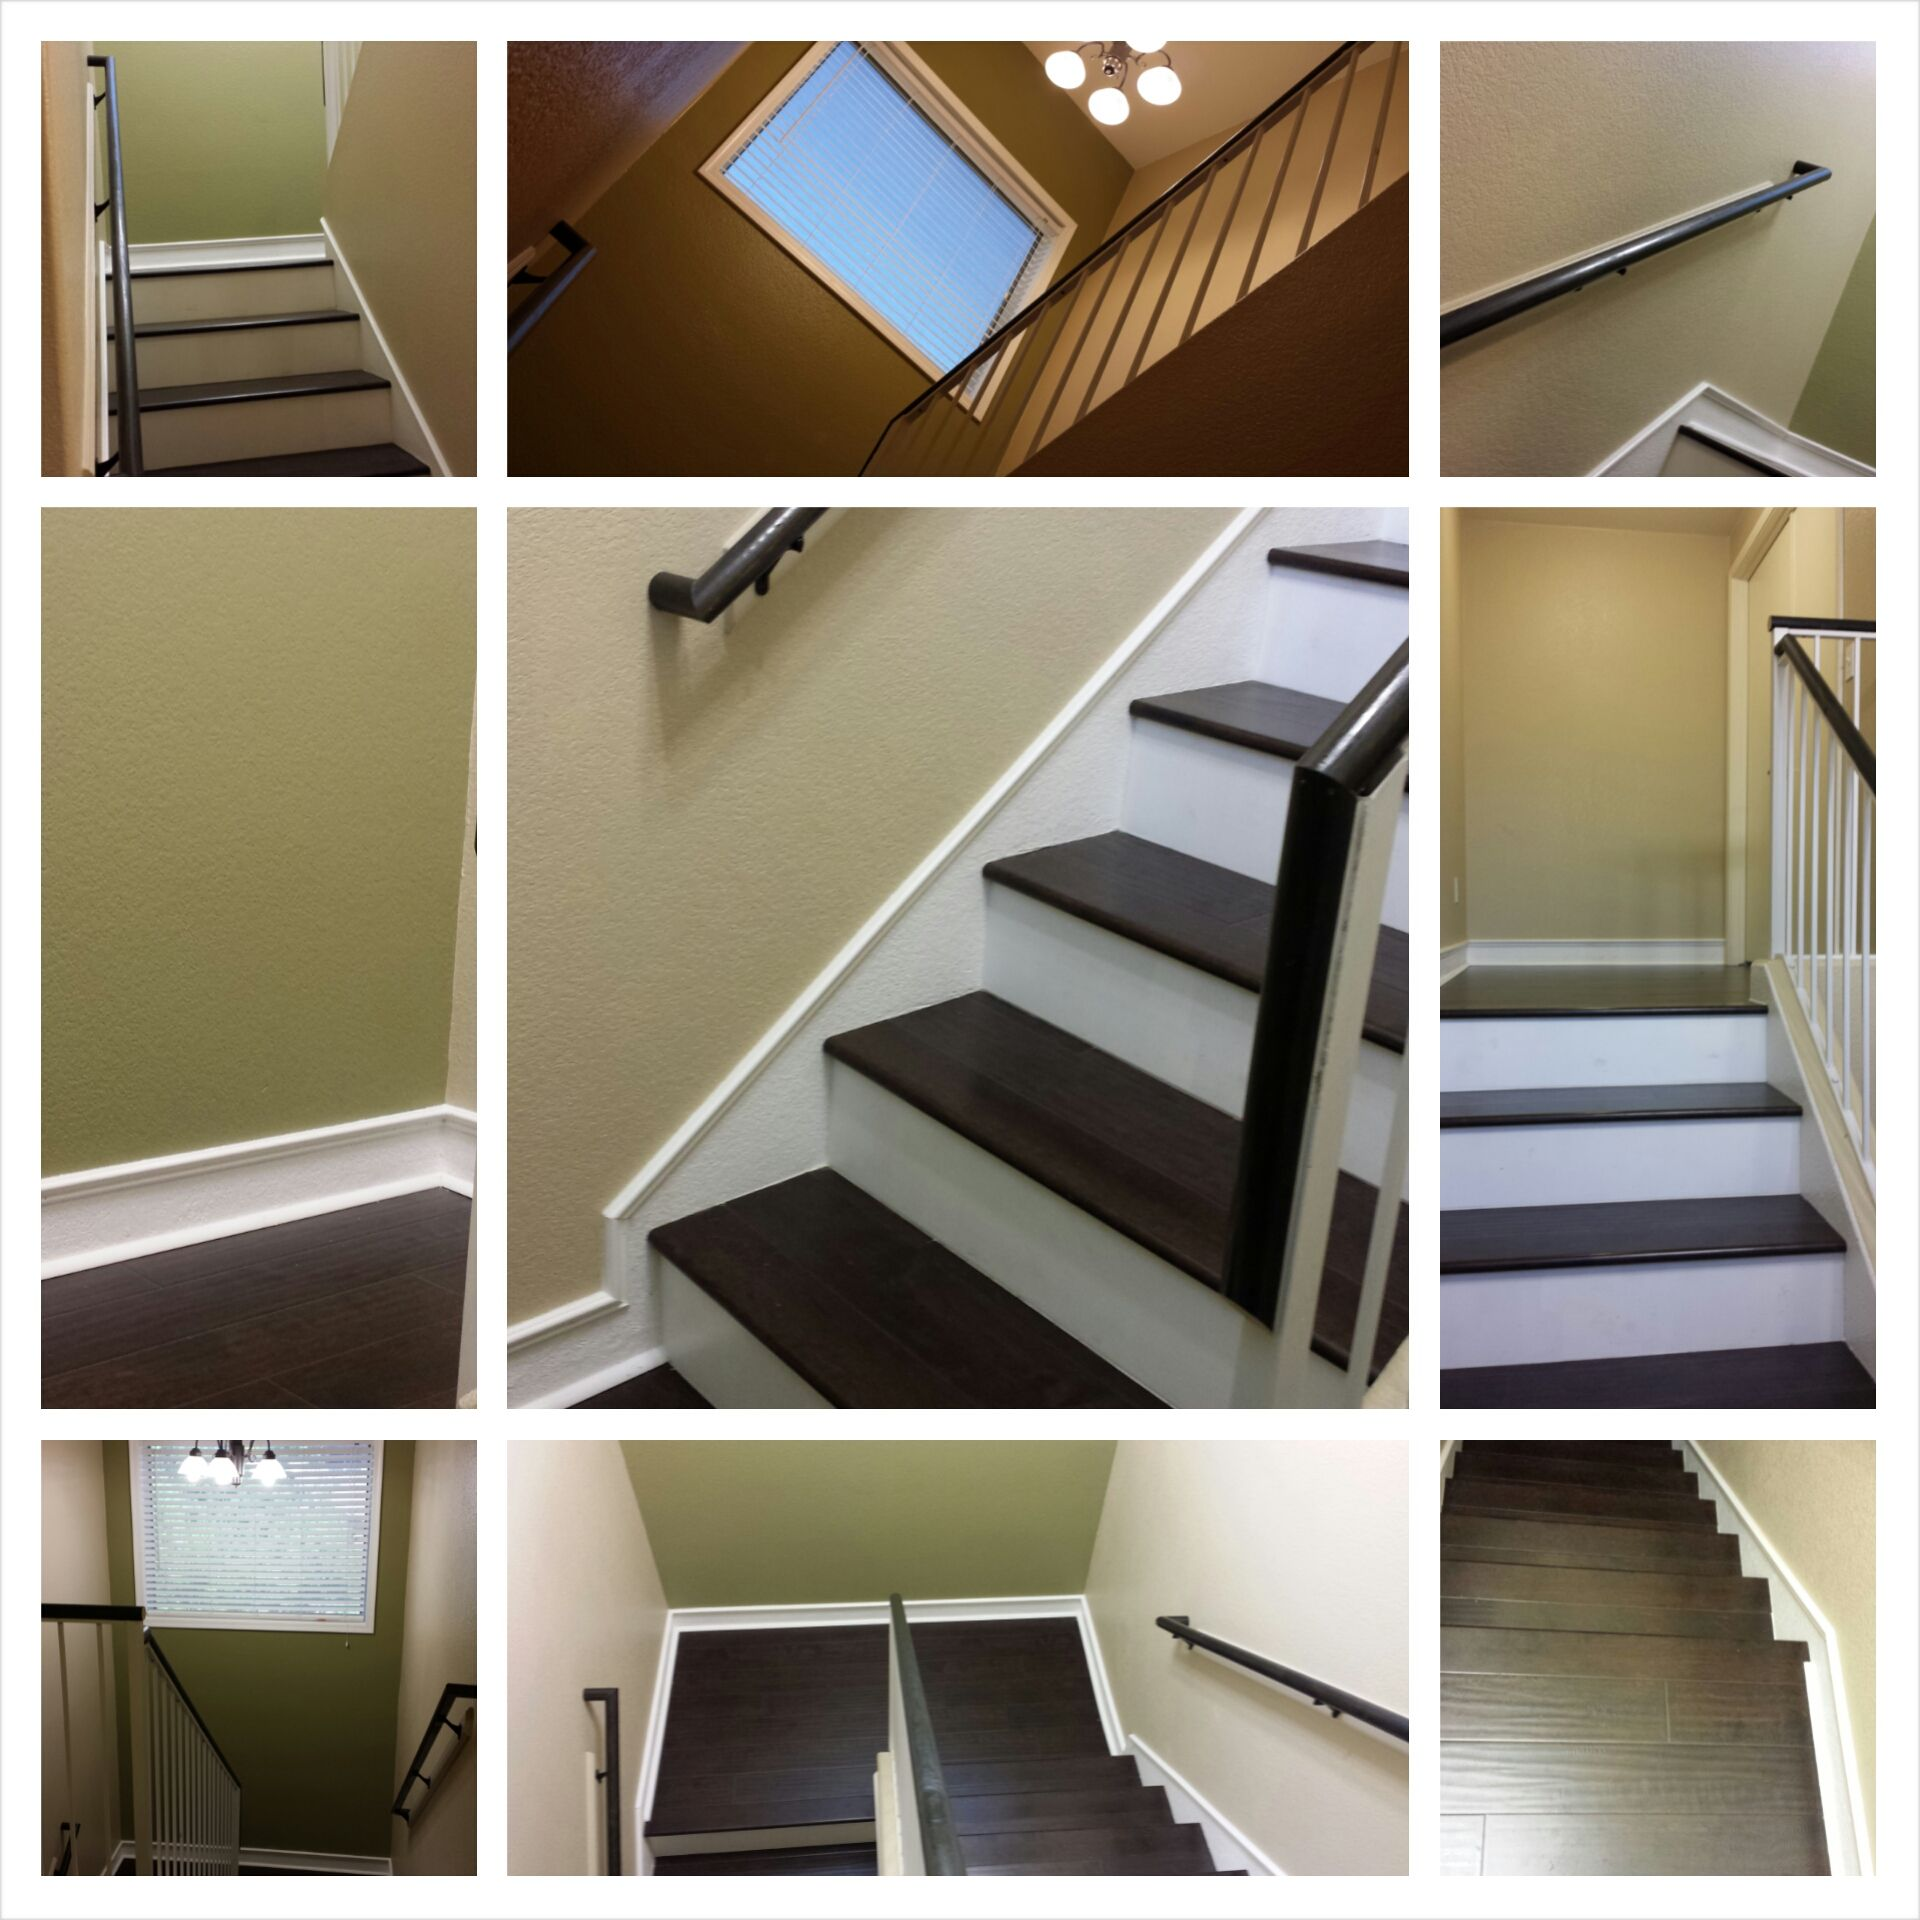 Staircase Remodel: Staircase Remodel- August 2014